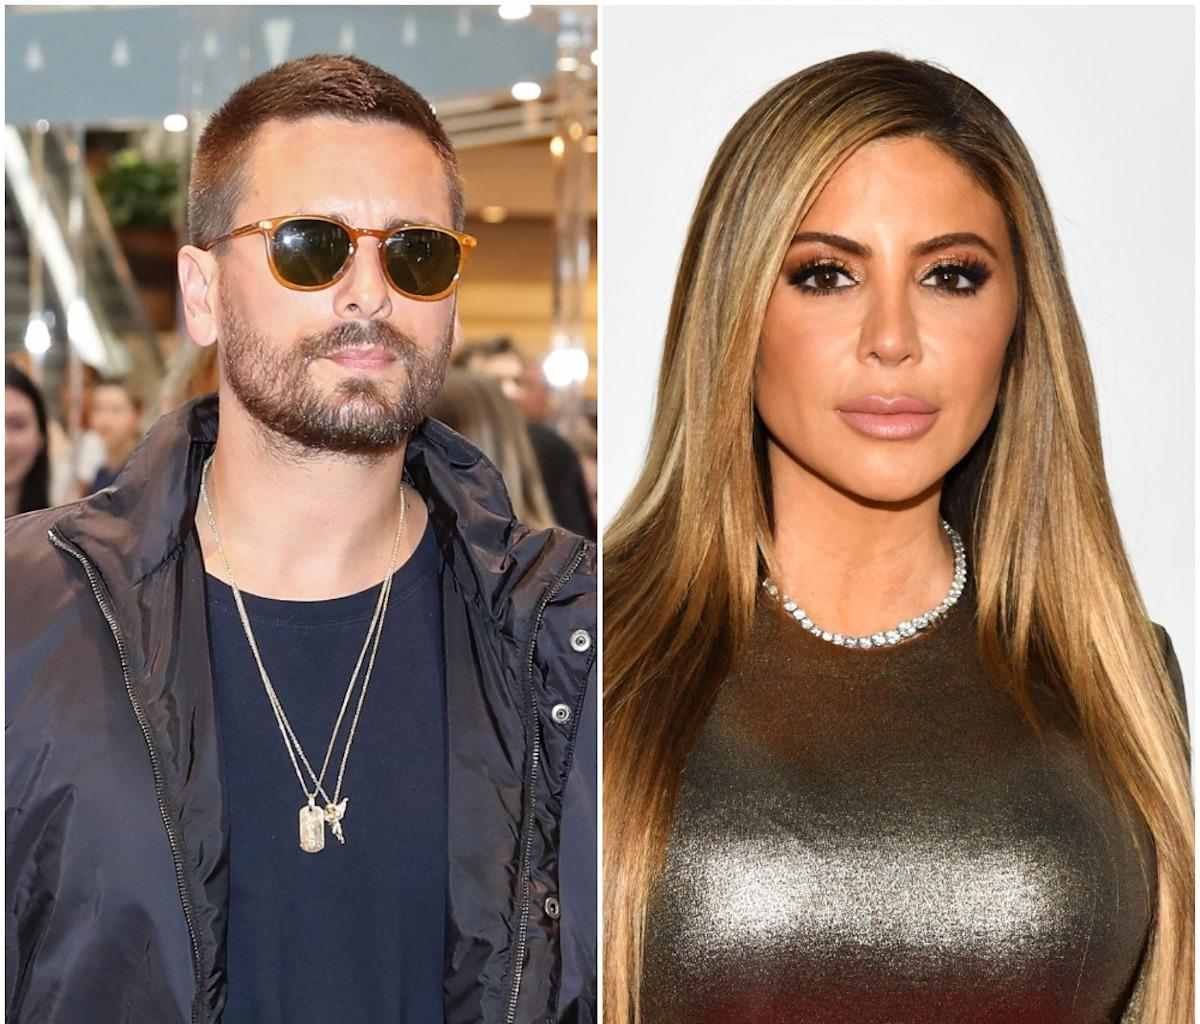 Scott Disick And Larsa Pippen - Here's Why They Hung Out Despite Her Drama With The Kardashians!